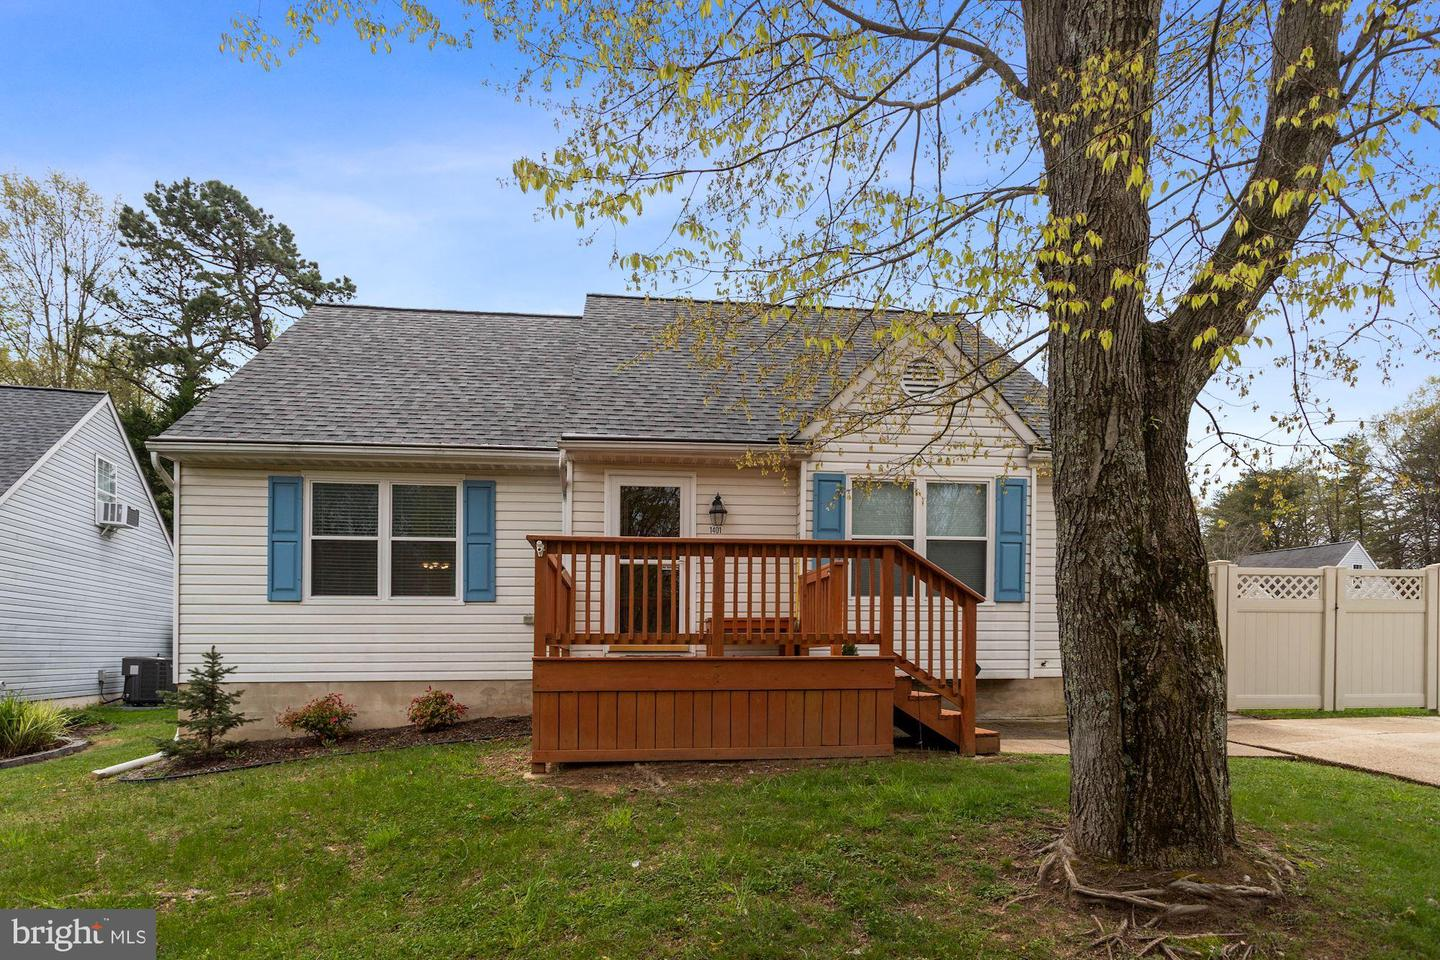 1401 IRON HORSE CT, SEVERN, Maryland 21144, 4 Bedrooms Bedrooms, ,3 BathroomsBathrooms,Single Family,For Sale,1401 IRON HORSE CT,MDAA465758